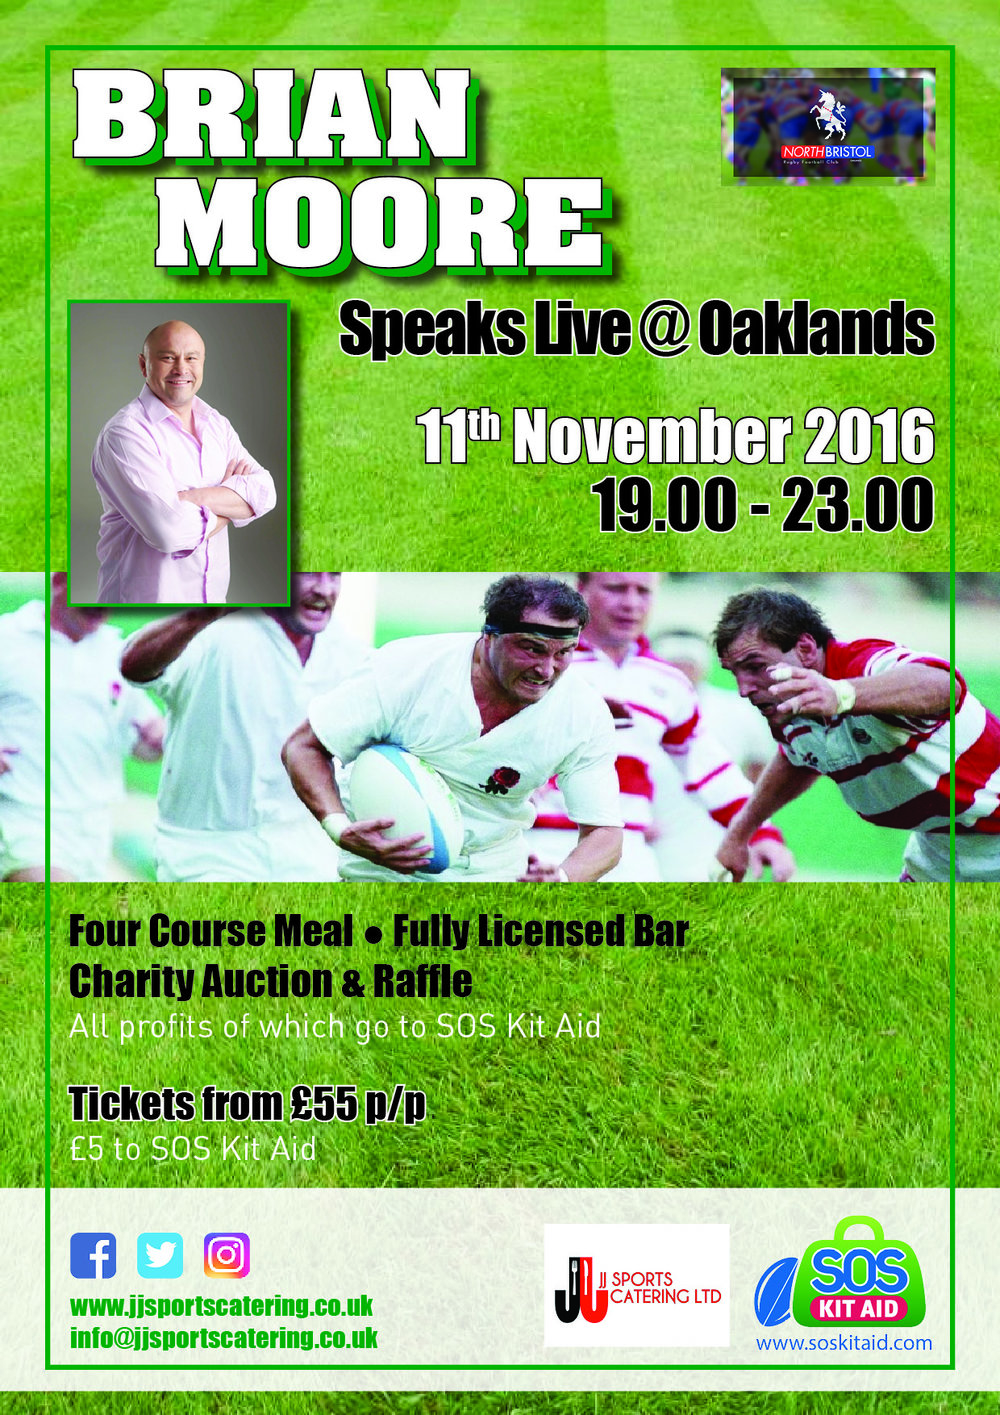 Our first Charity event and its a cracker, Brian Moore hosts an evening that's destined to go down as a classic night.